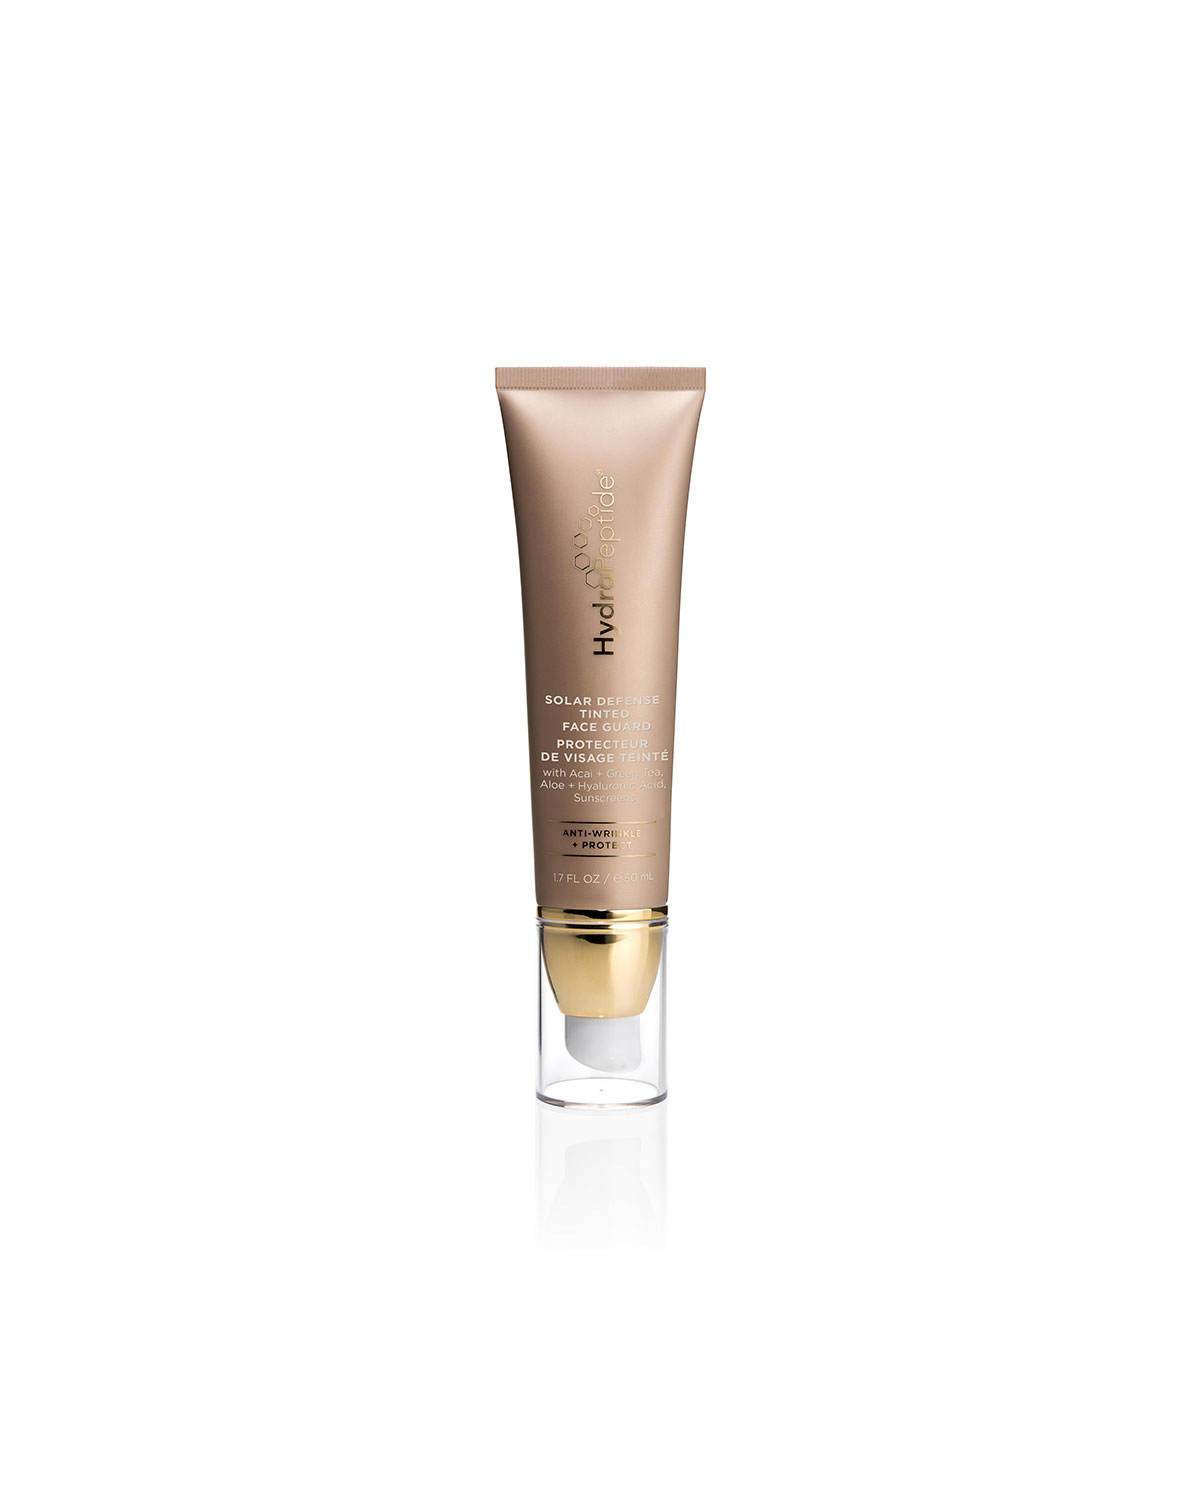 Hydropeptide Solar Defense - Tinted Face Guard 50ml